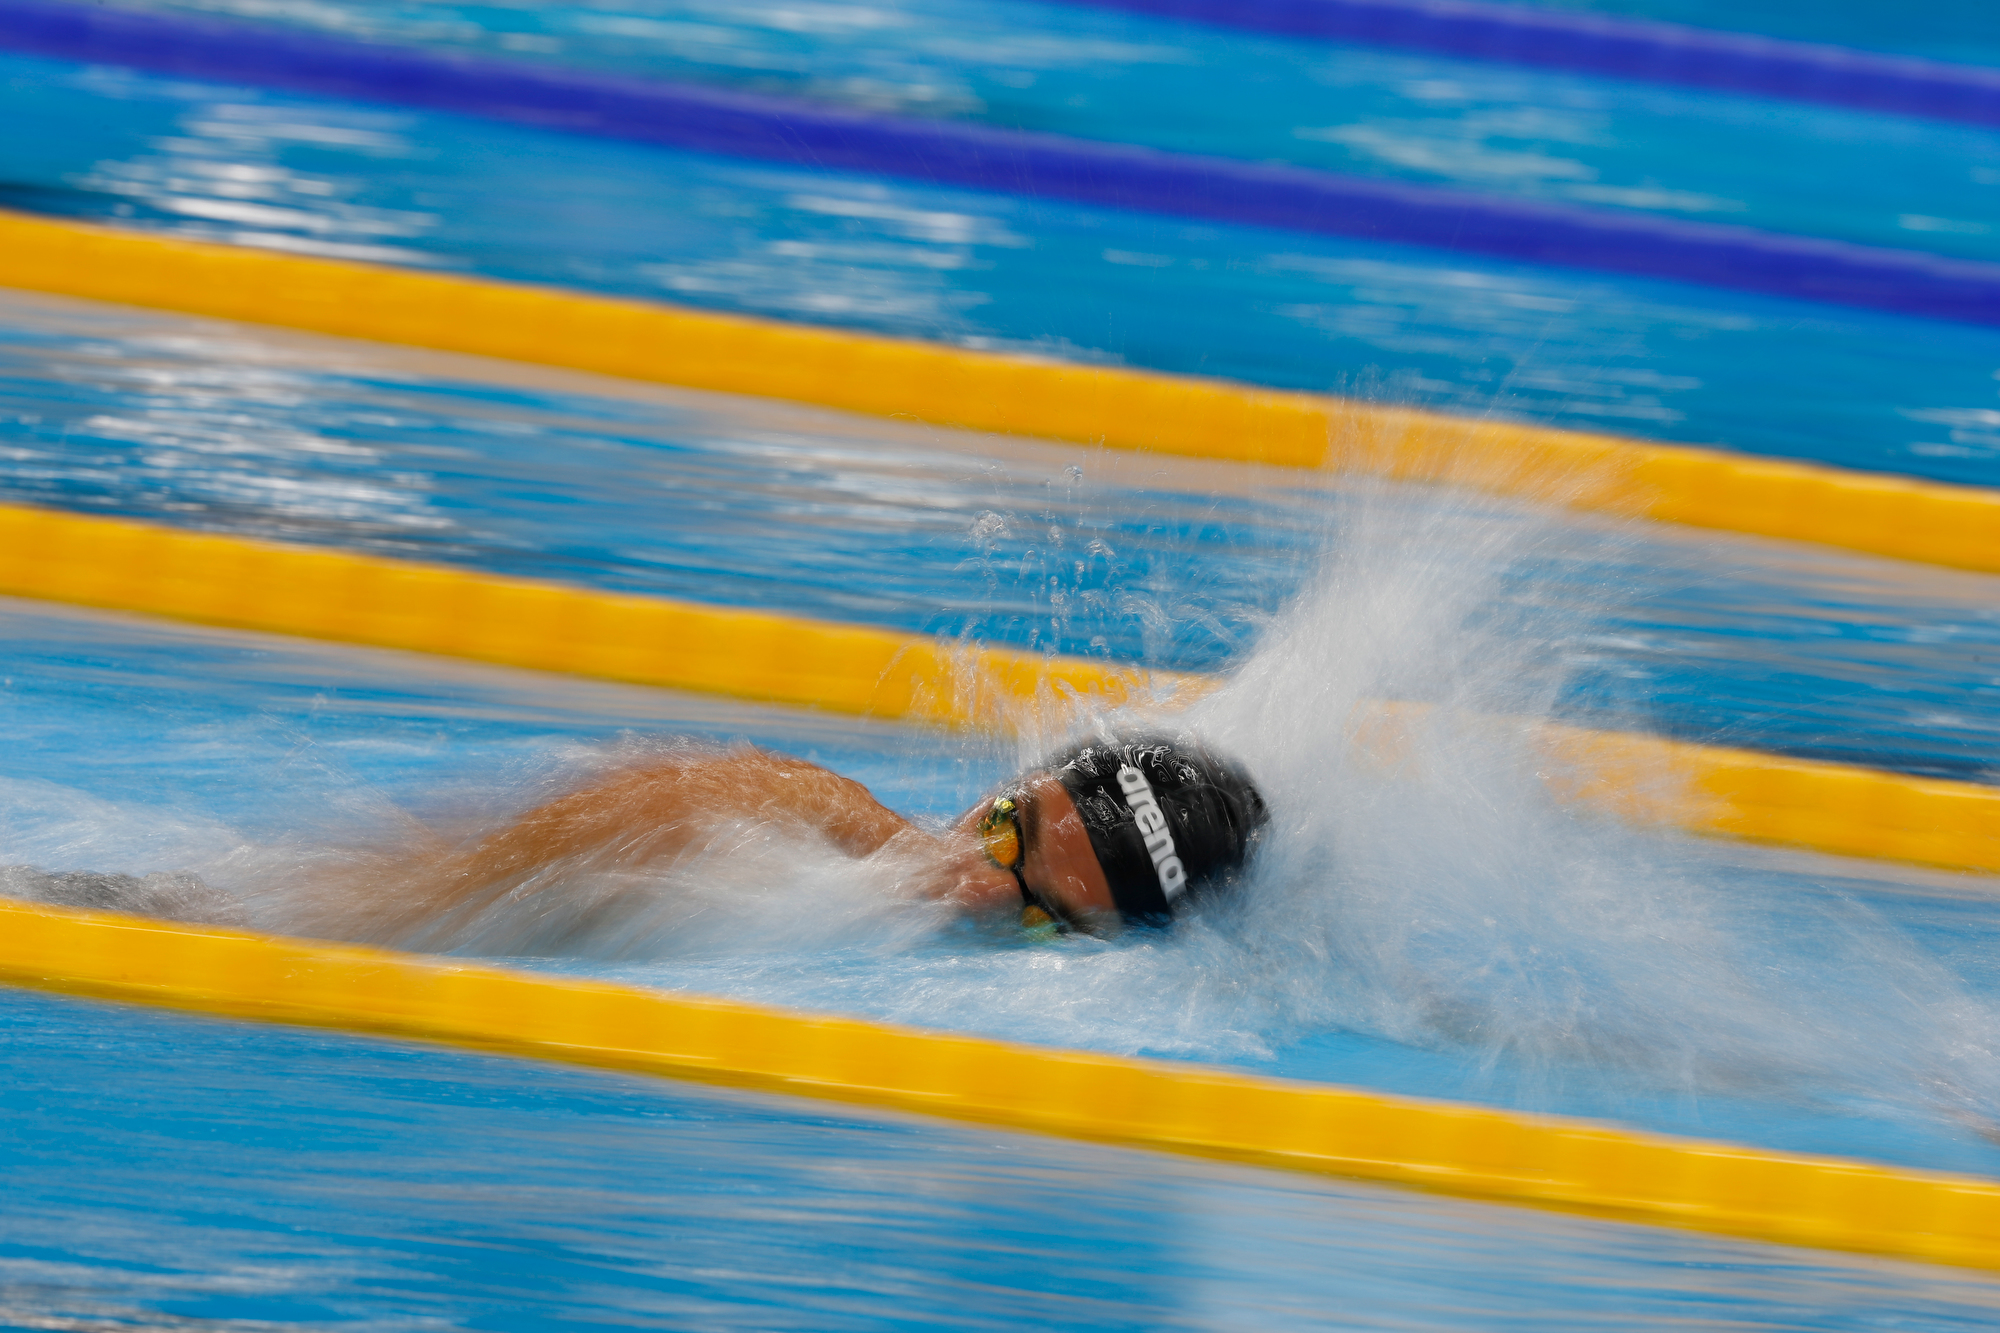 Gregorio Paltrinieri of Italy competes and wins the gold medal in the men's 15000m freestyle at the Olympic Aquatics Stadium at the 2016 Rio Summer Olympics in Rio de Janeiro, Brazil, on August 13, 2016.